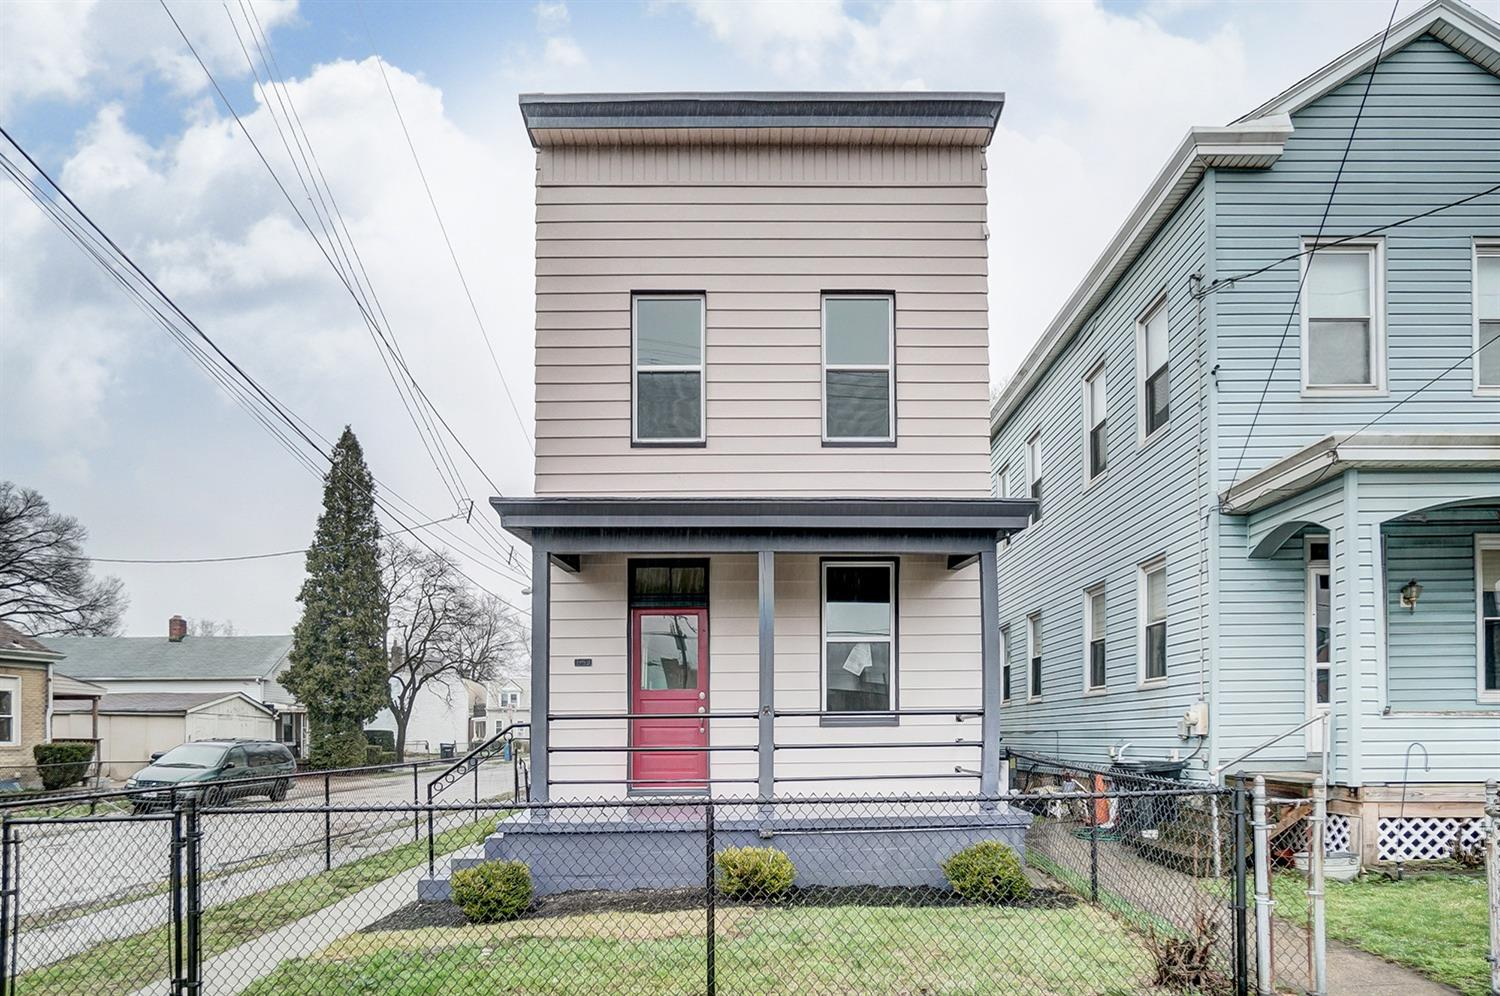 This Northside property with 3 bd rms & 3 Full baths has been completely remodeled & updated!  Features include wood floors, granite countertop in kitchen, & new appliances.  Also, a 2 car detached garage, patio, fenced in yard.  A true must see.  Urban living at its finest!